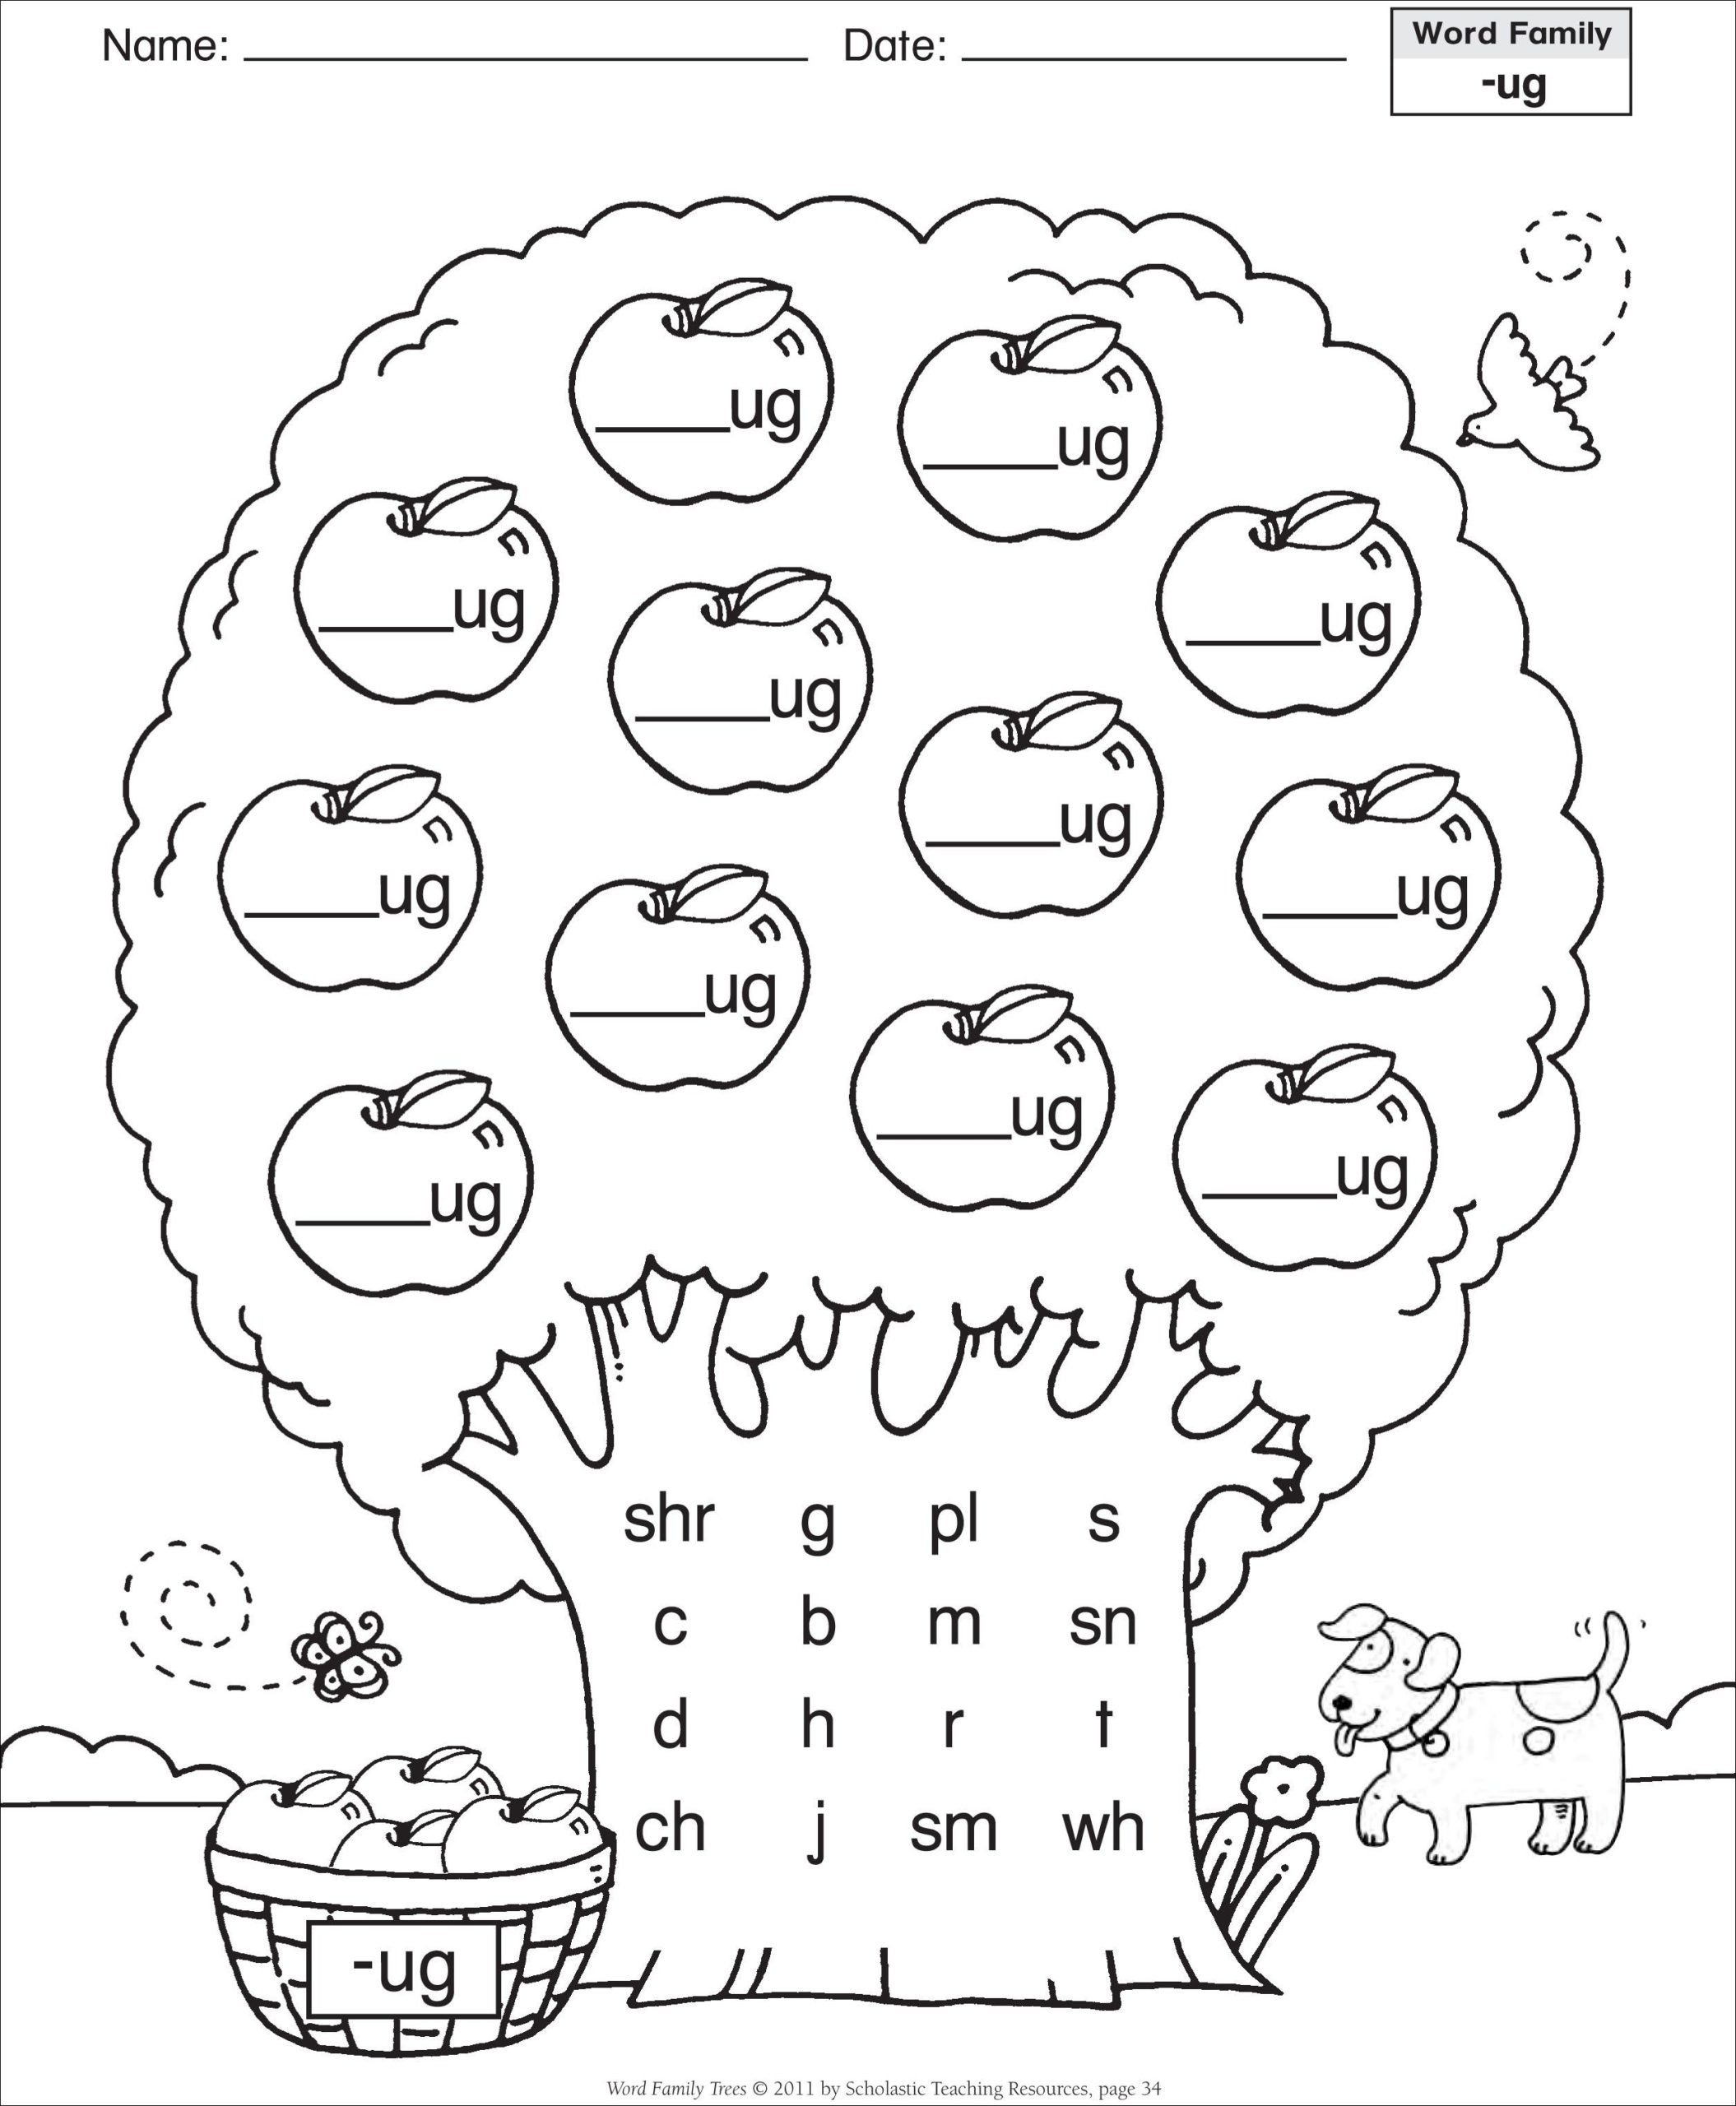 Prefix Suffix Worksheets 3rd Grade Short Vowel Ug Word Family Tree Families Reading Prefixes